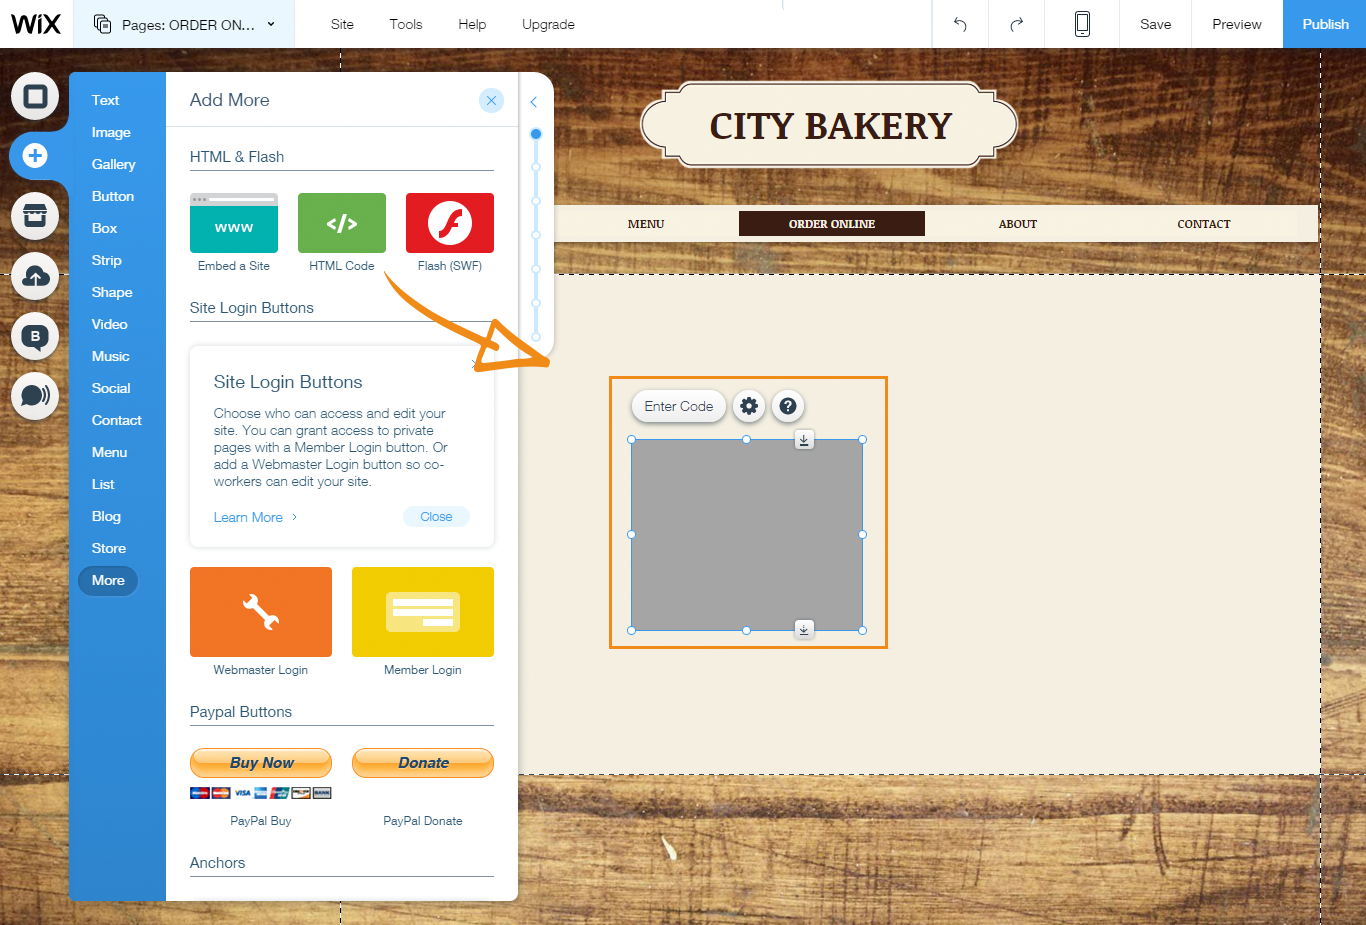 How to add the online ordering button in Wix | GloriaFood Blog